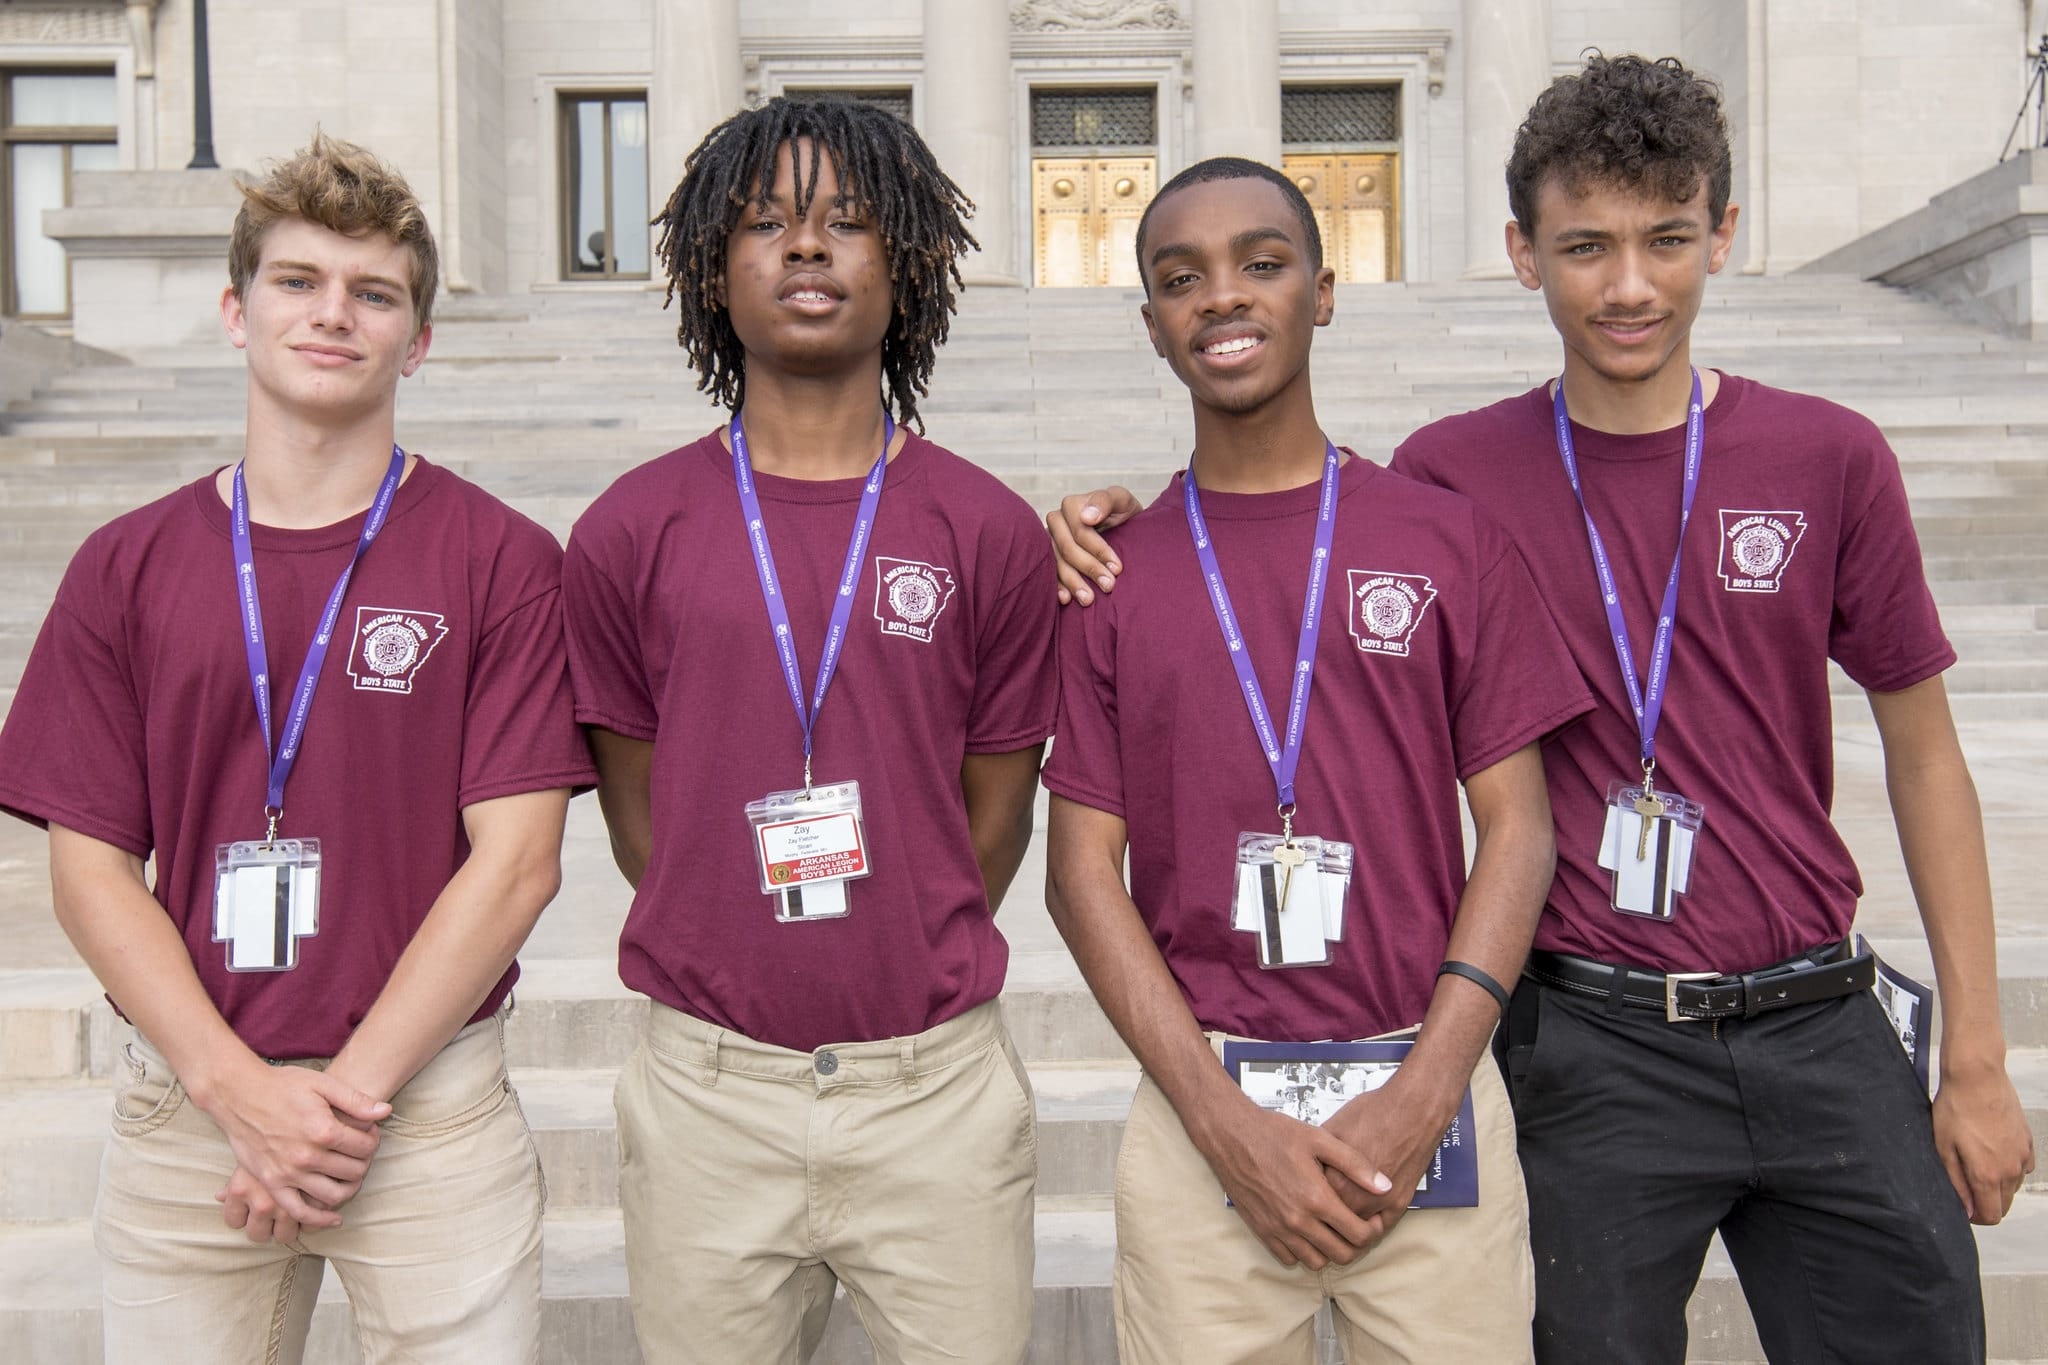 Delegates elected to city office at Arkansas Boys State 2021